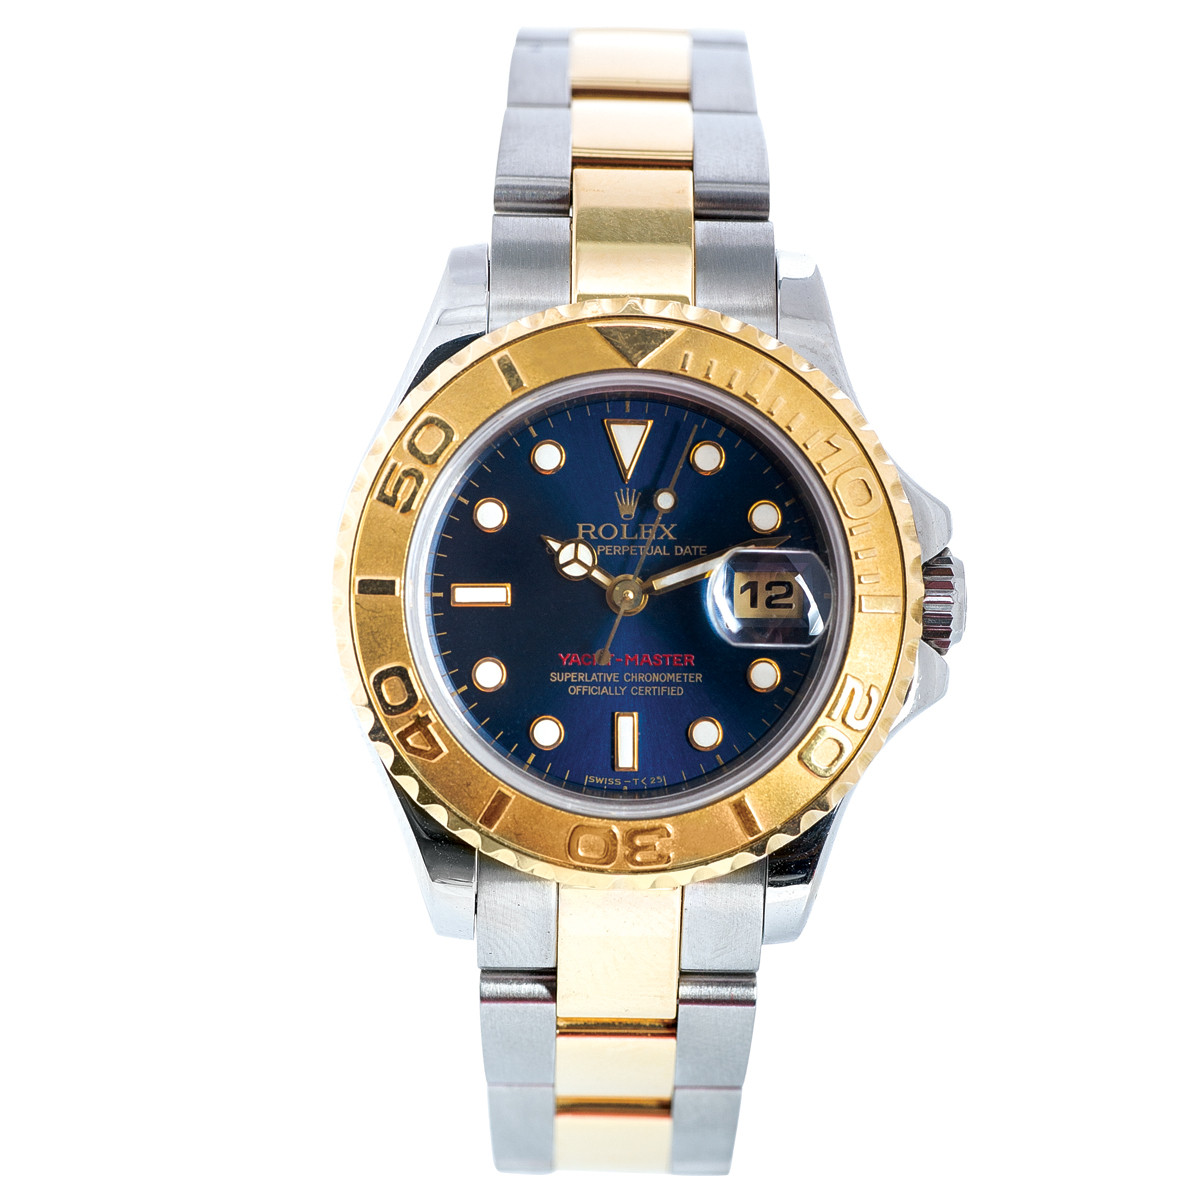 Preowned Rolex Yacht-Master